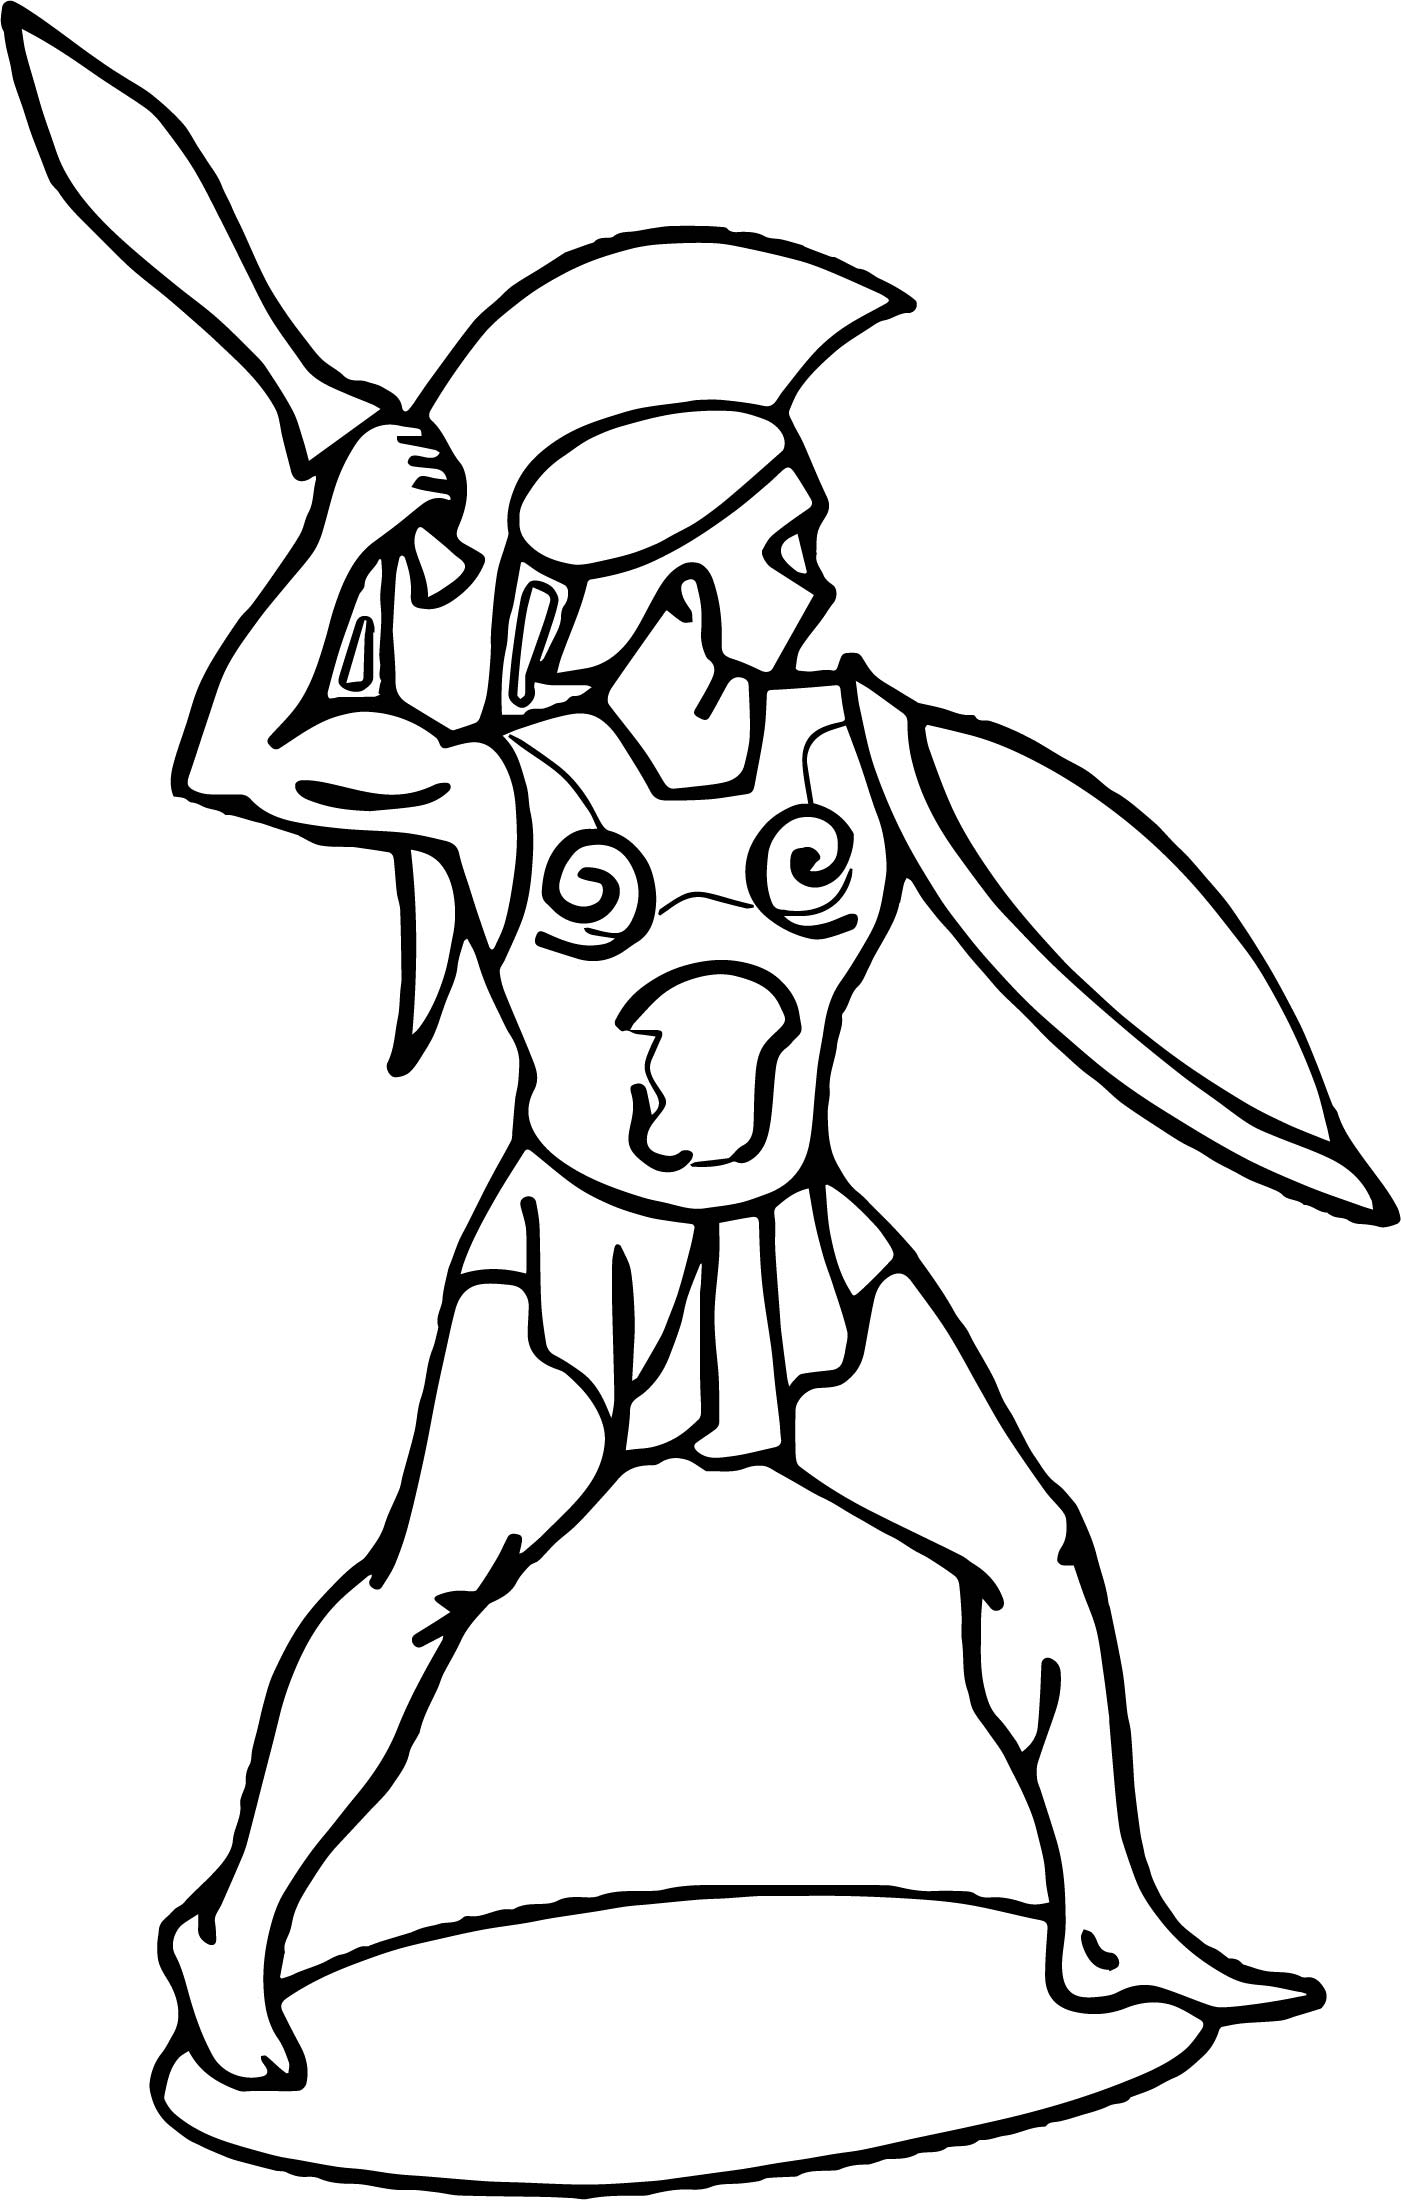 how to draw a roman gladiator roman warrior drawing free download on clipartmag gladiator how to draw roman a